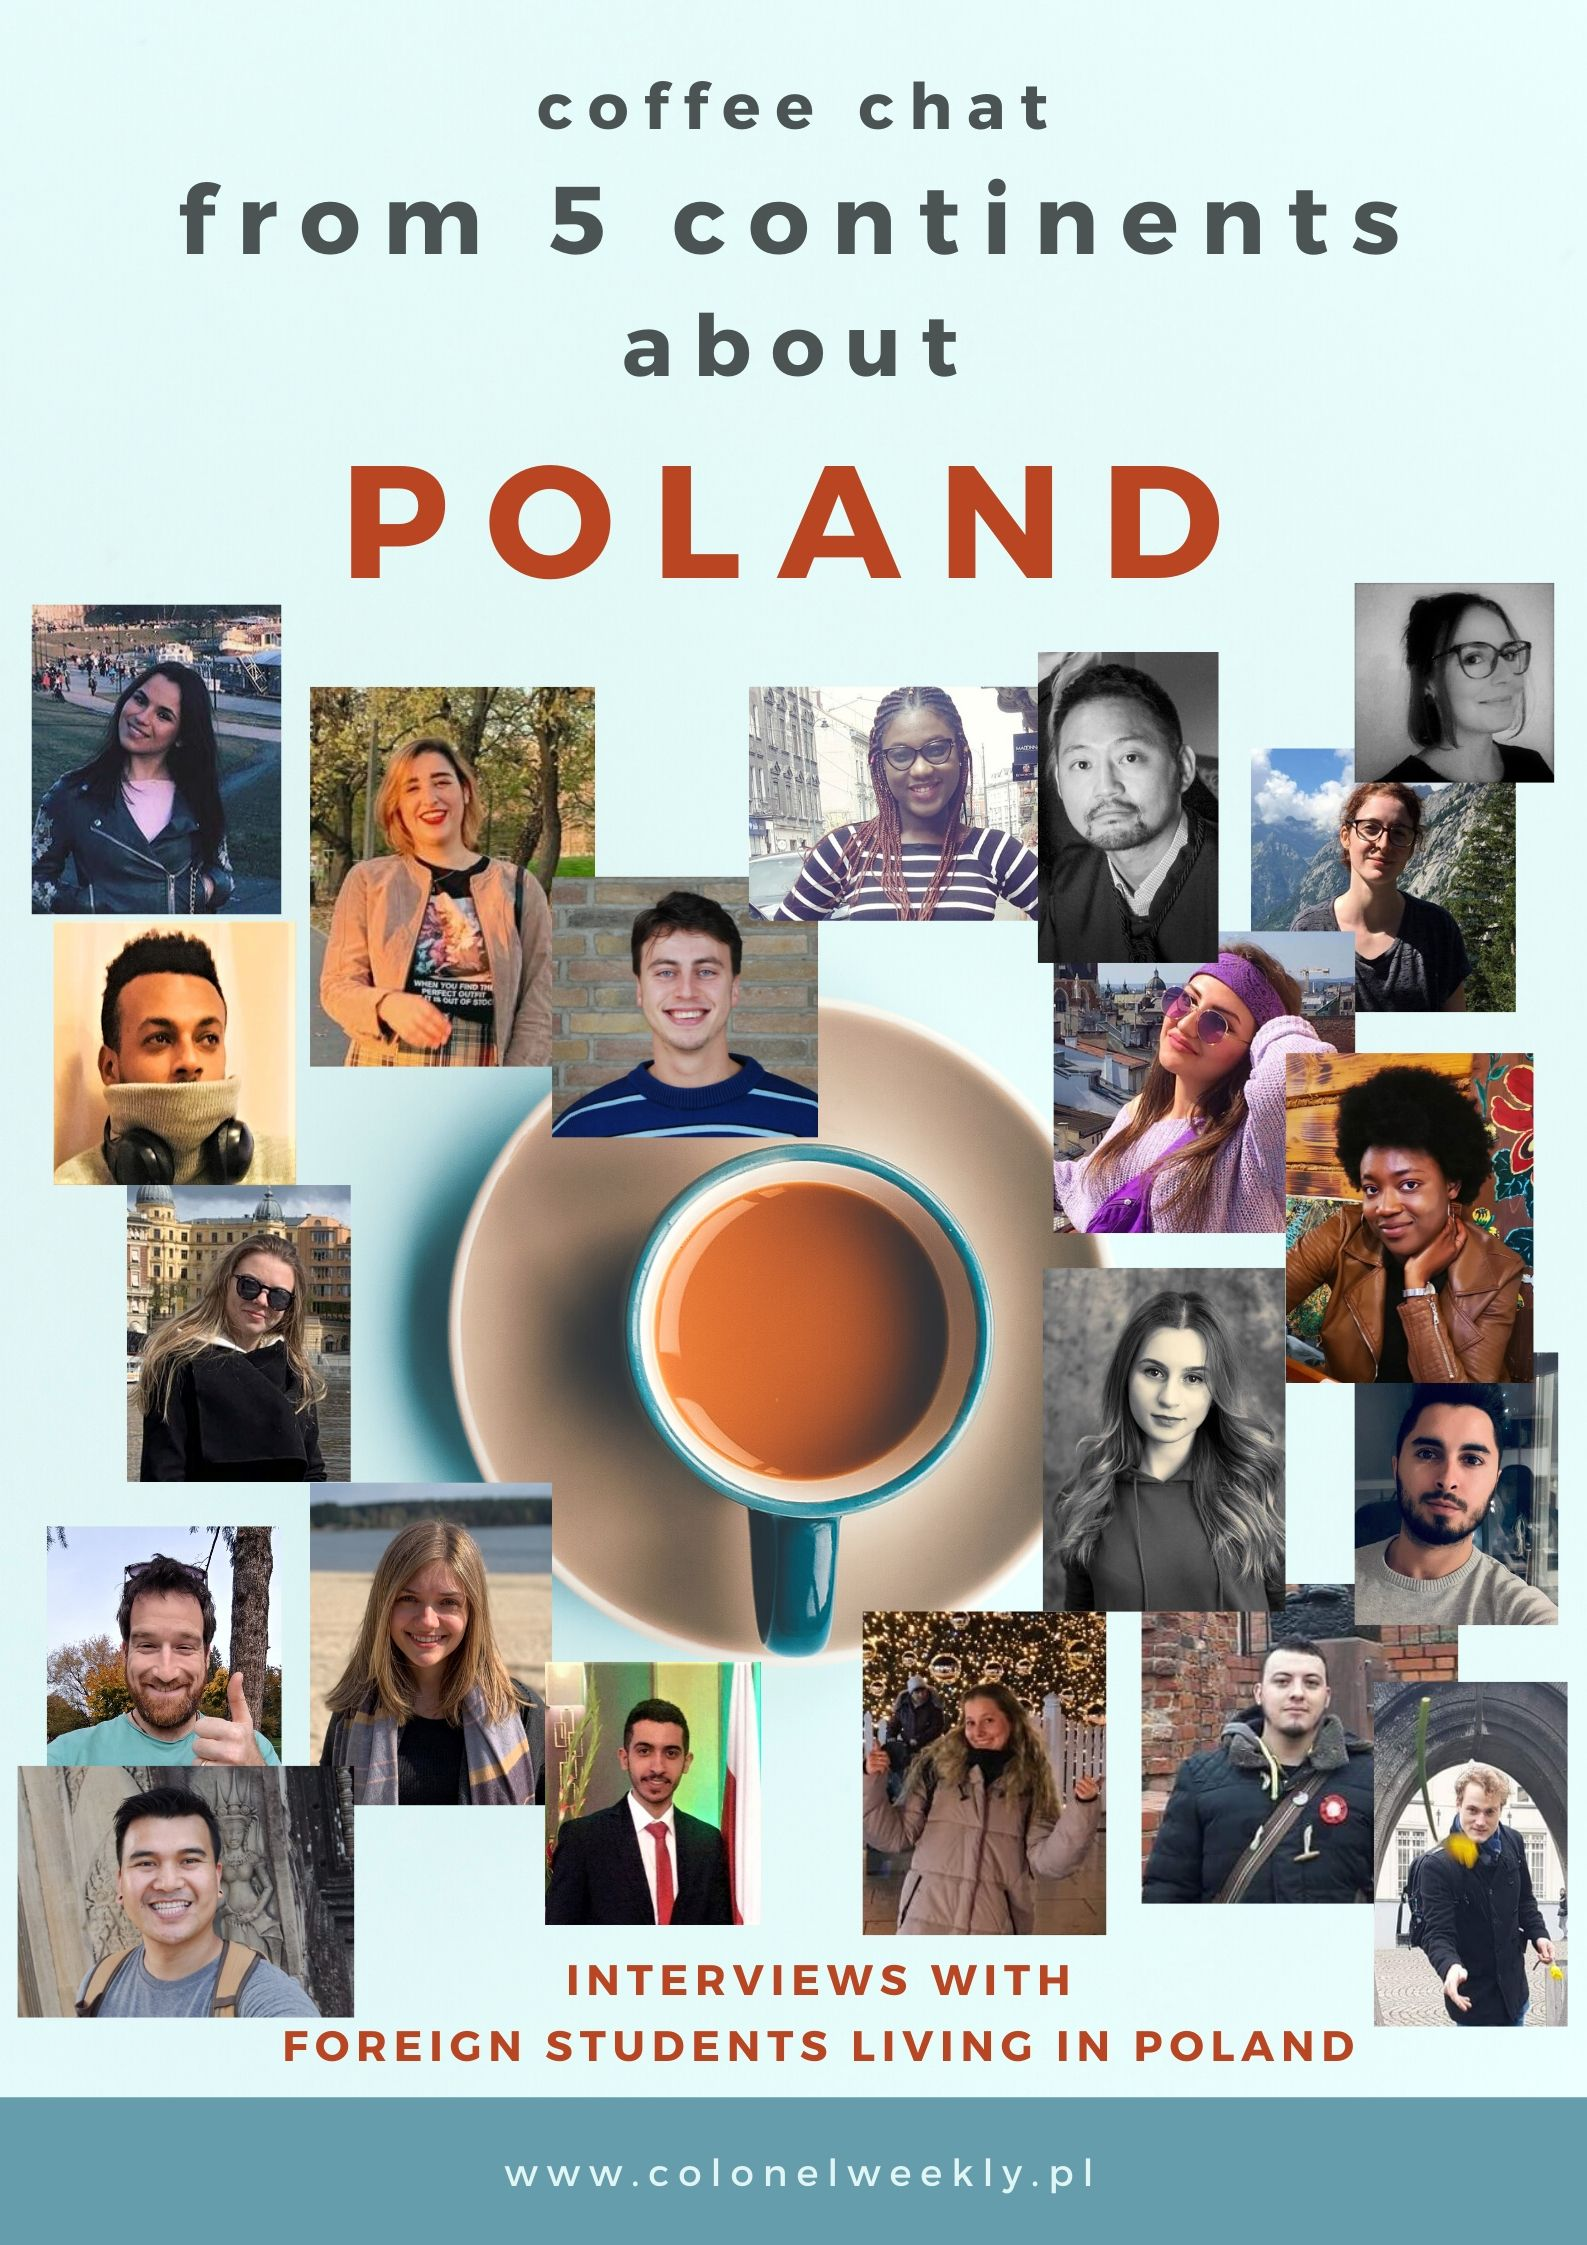 From five continents about Poland